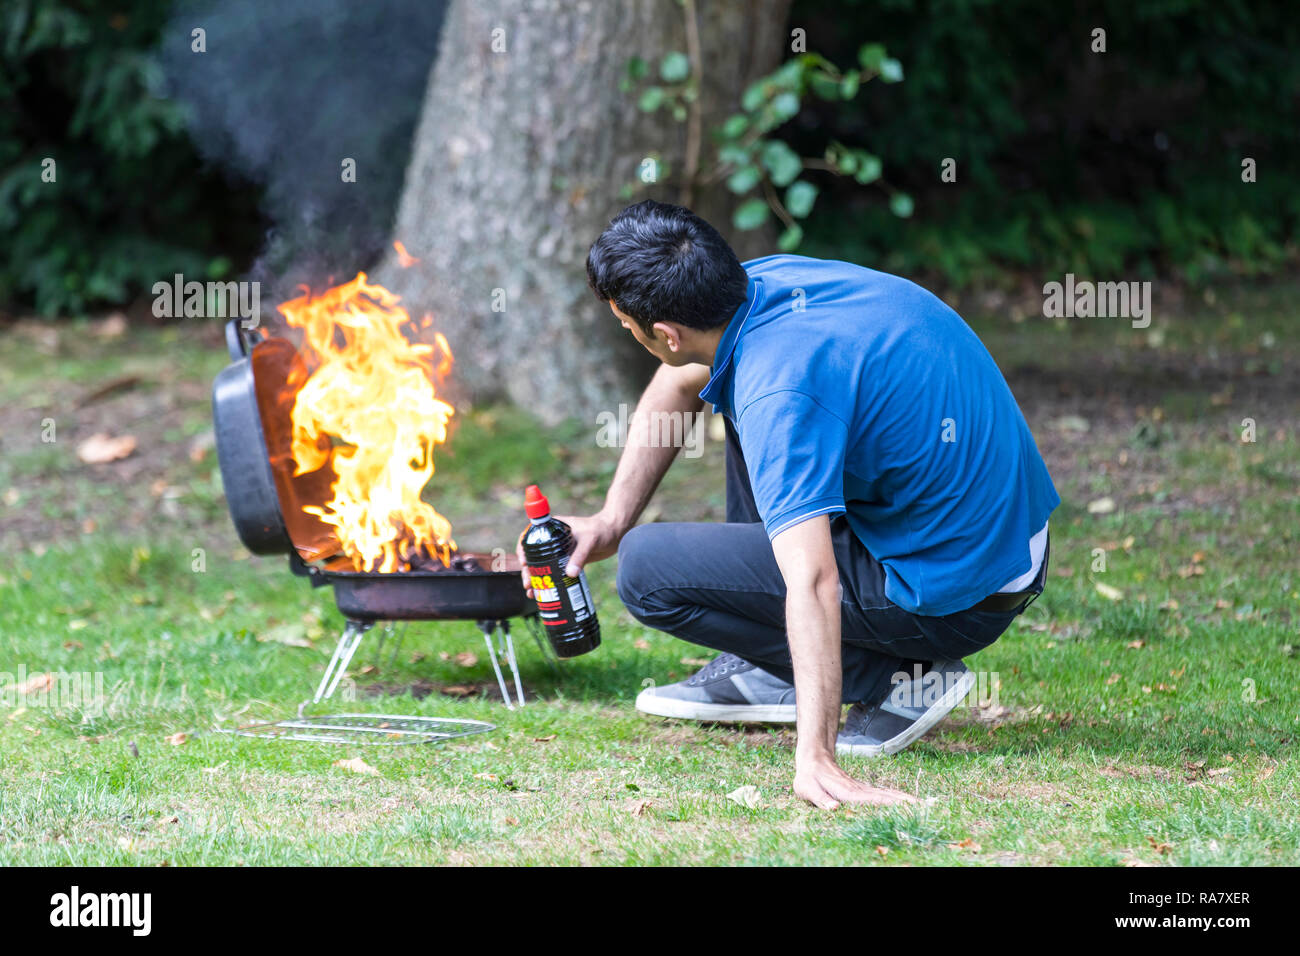 Man ignites a charcoal grill with liquid grill lighter and recoils from the flame, - Stock Image